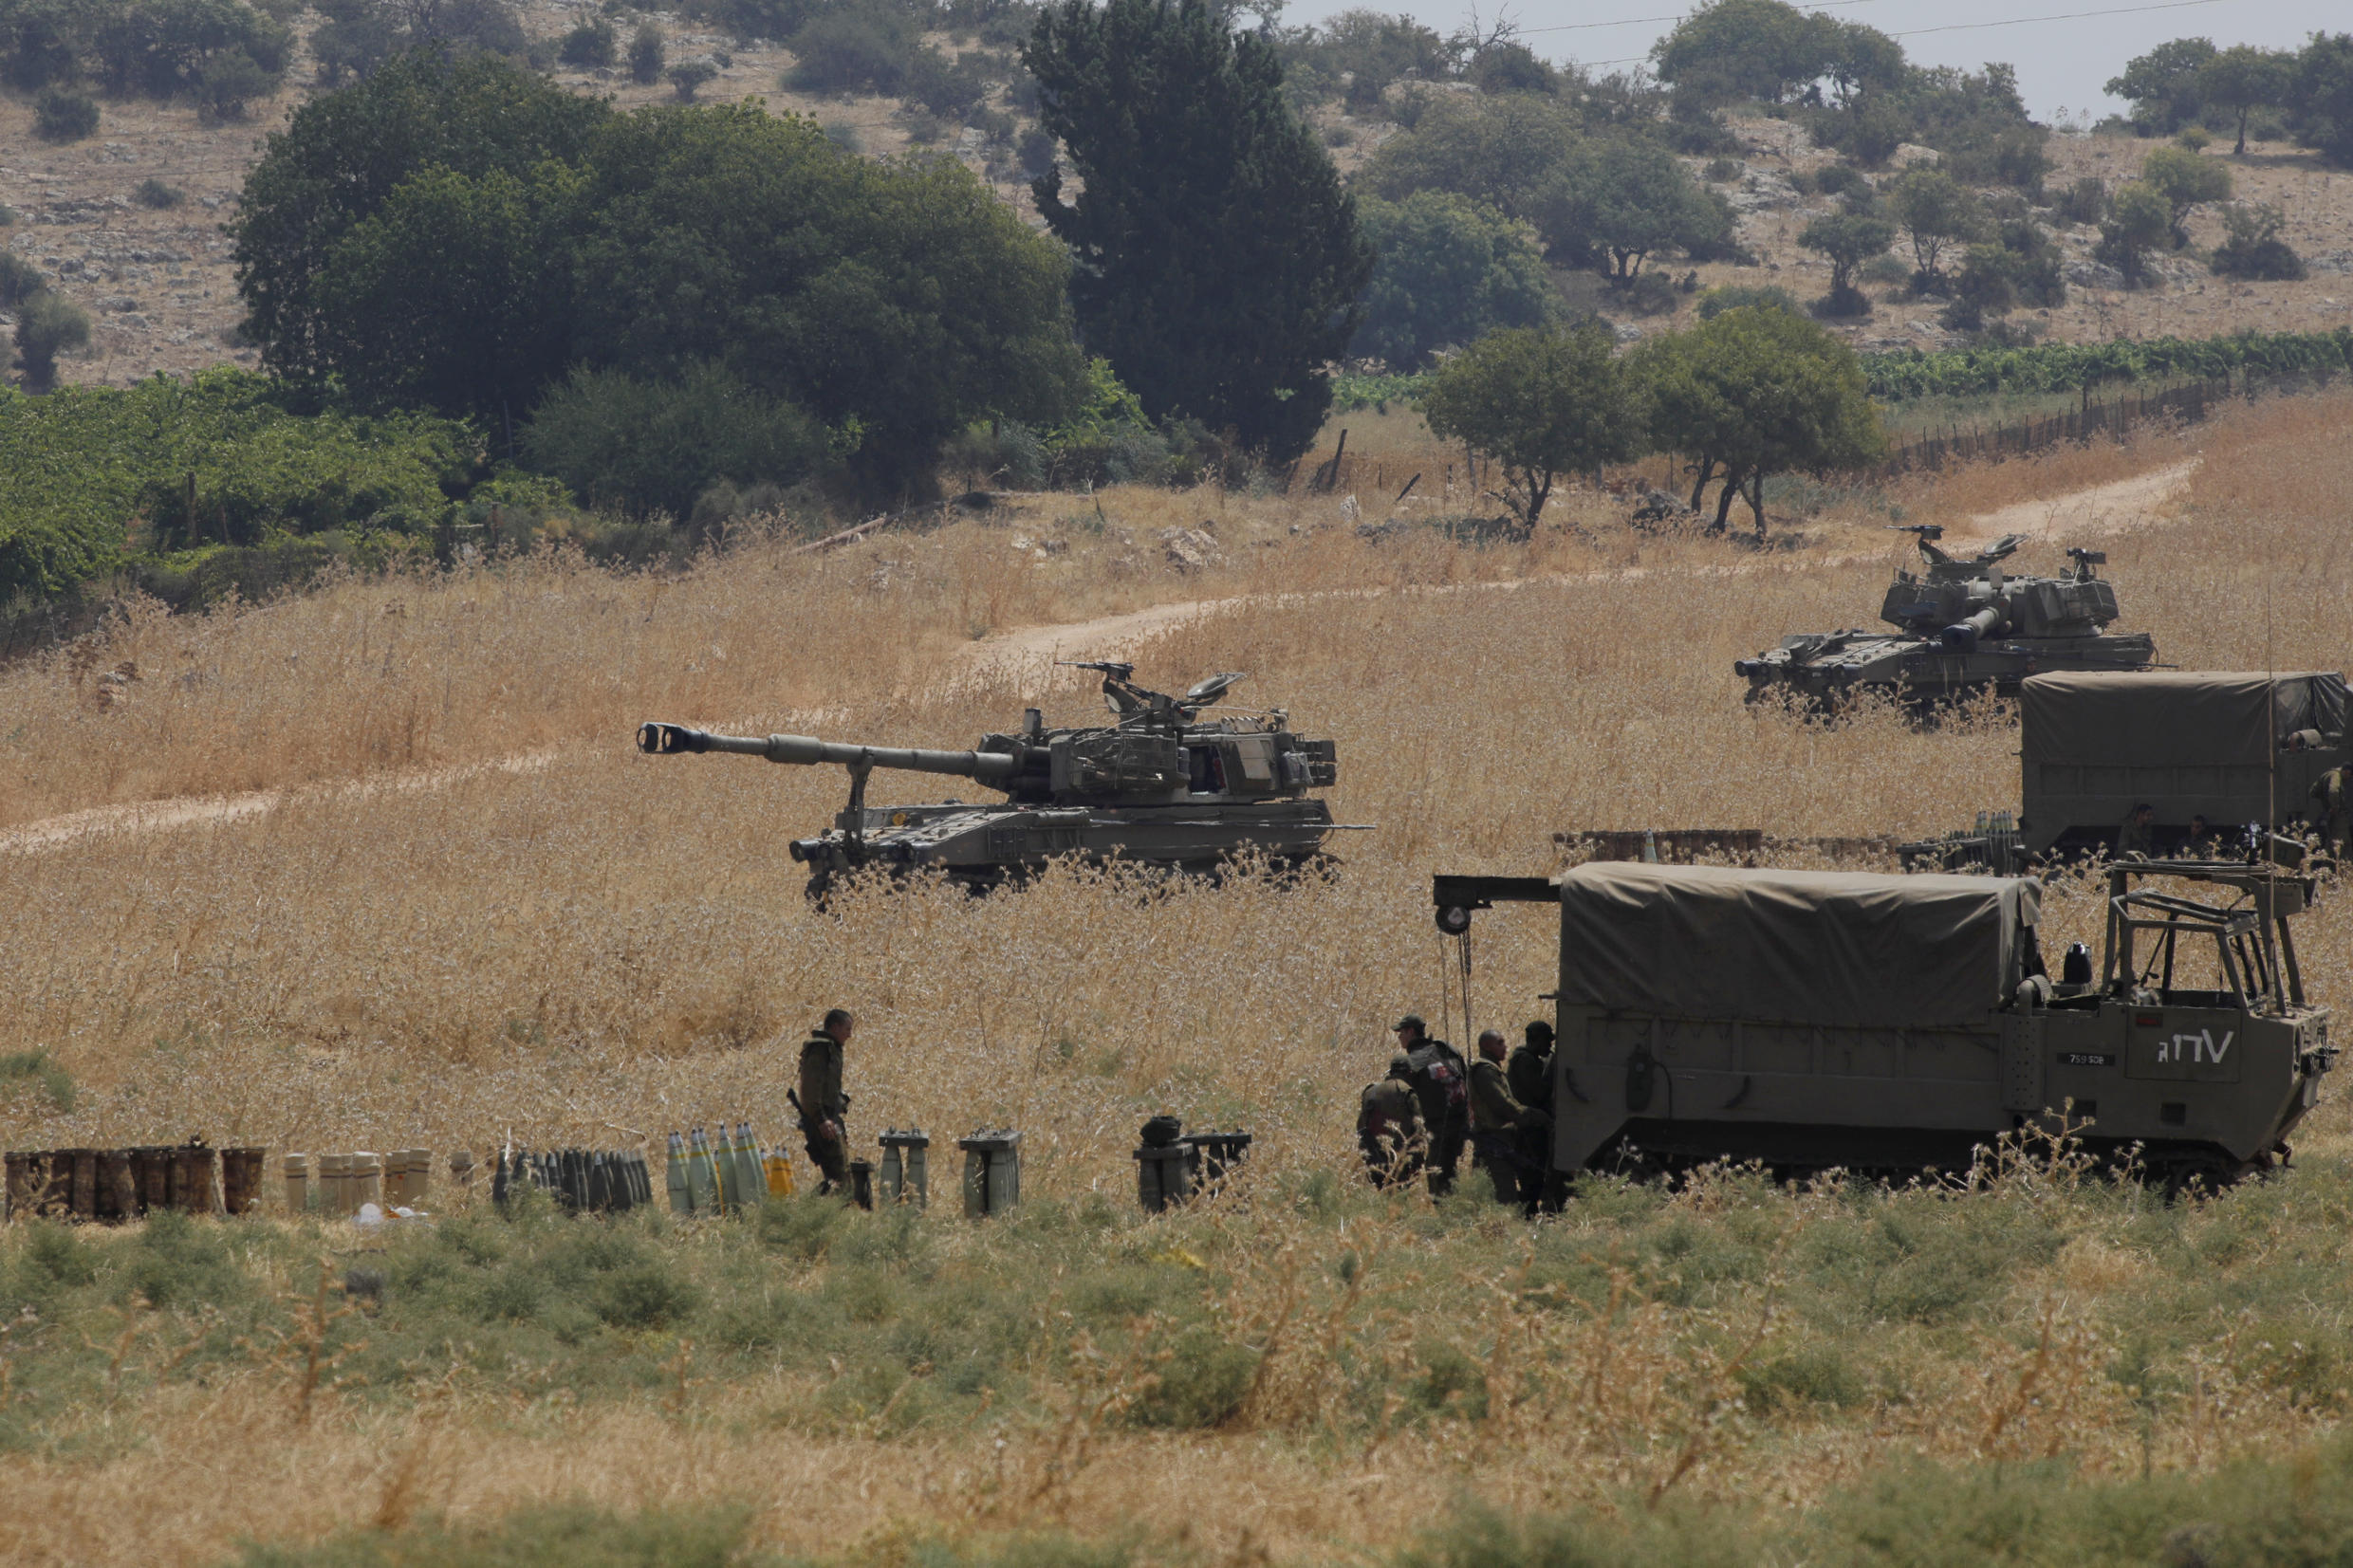 Armoured vehicles and 155 mm self-propelled howitzers deployed in the Upper Galilee in northern Israel on the border with Lebanon on July 27, 2020.